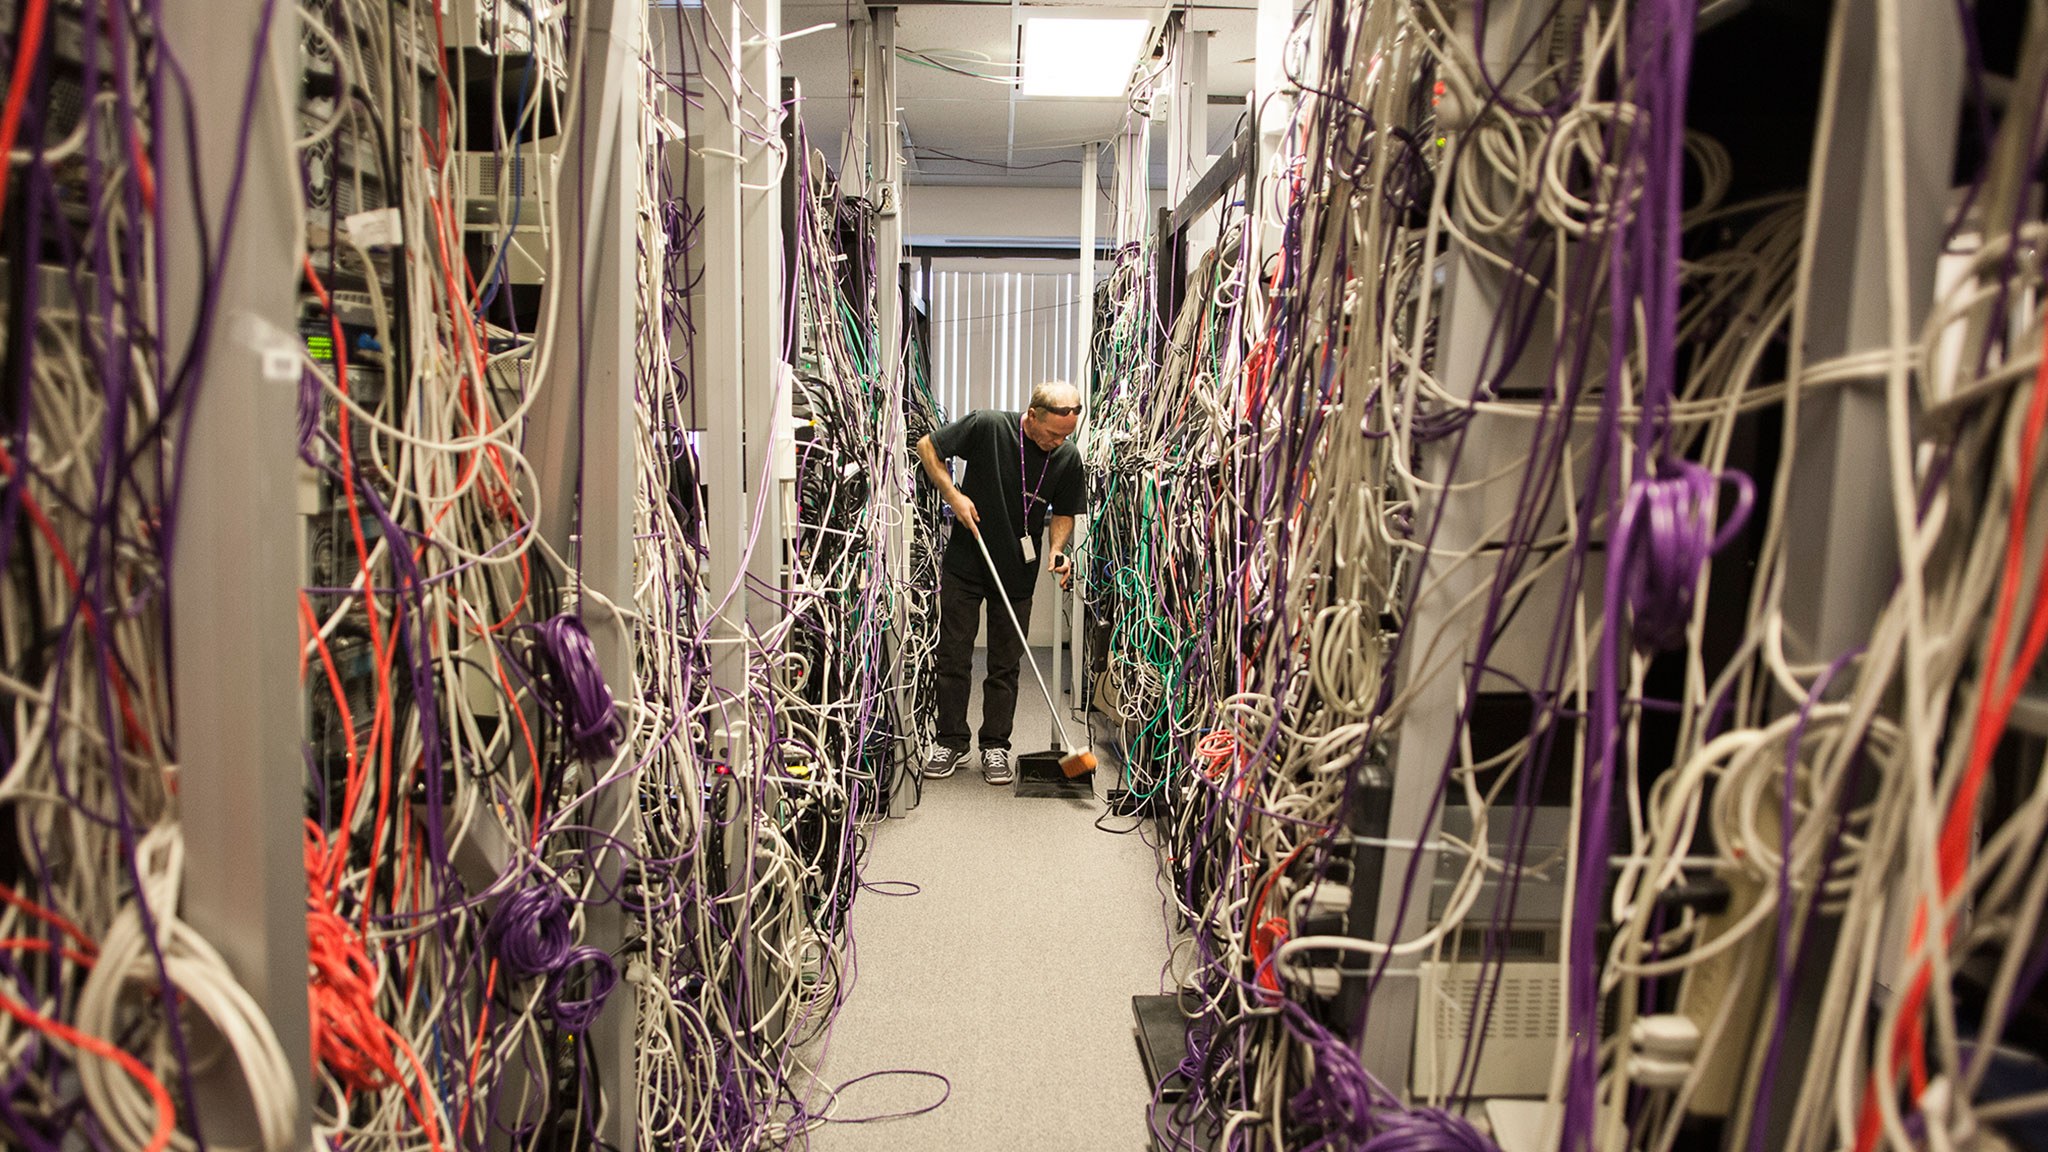 Inside Alcatel Lucent The Company That Makes The Web Financial Times